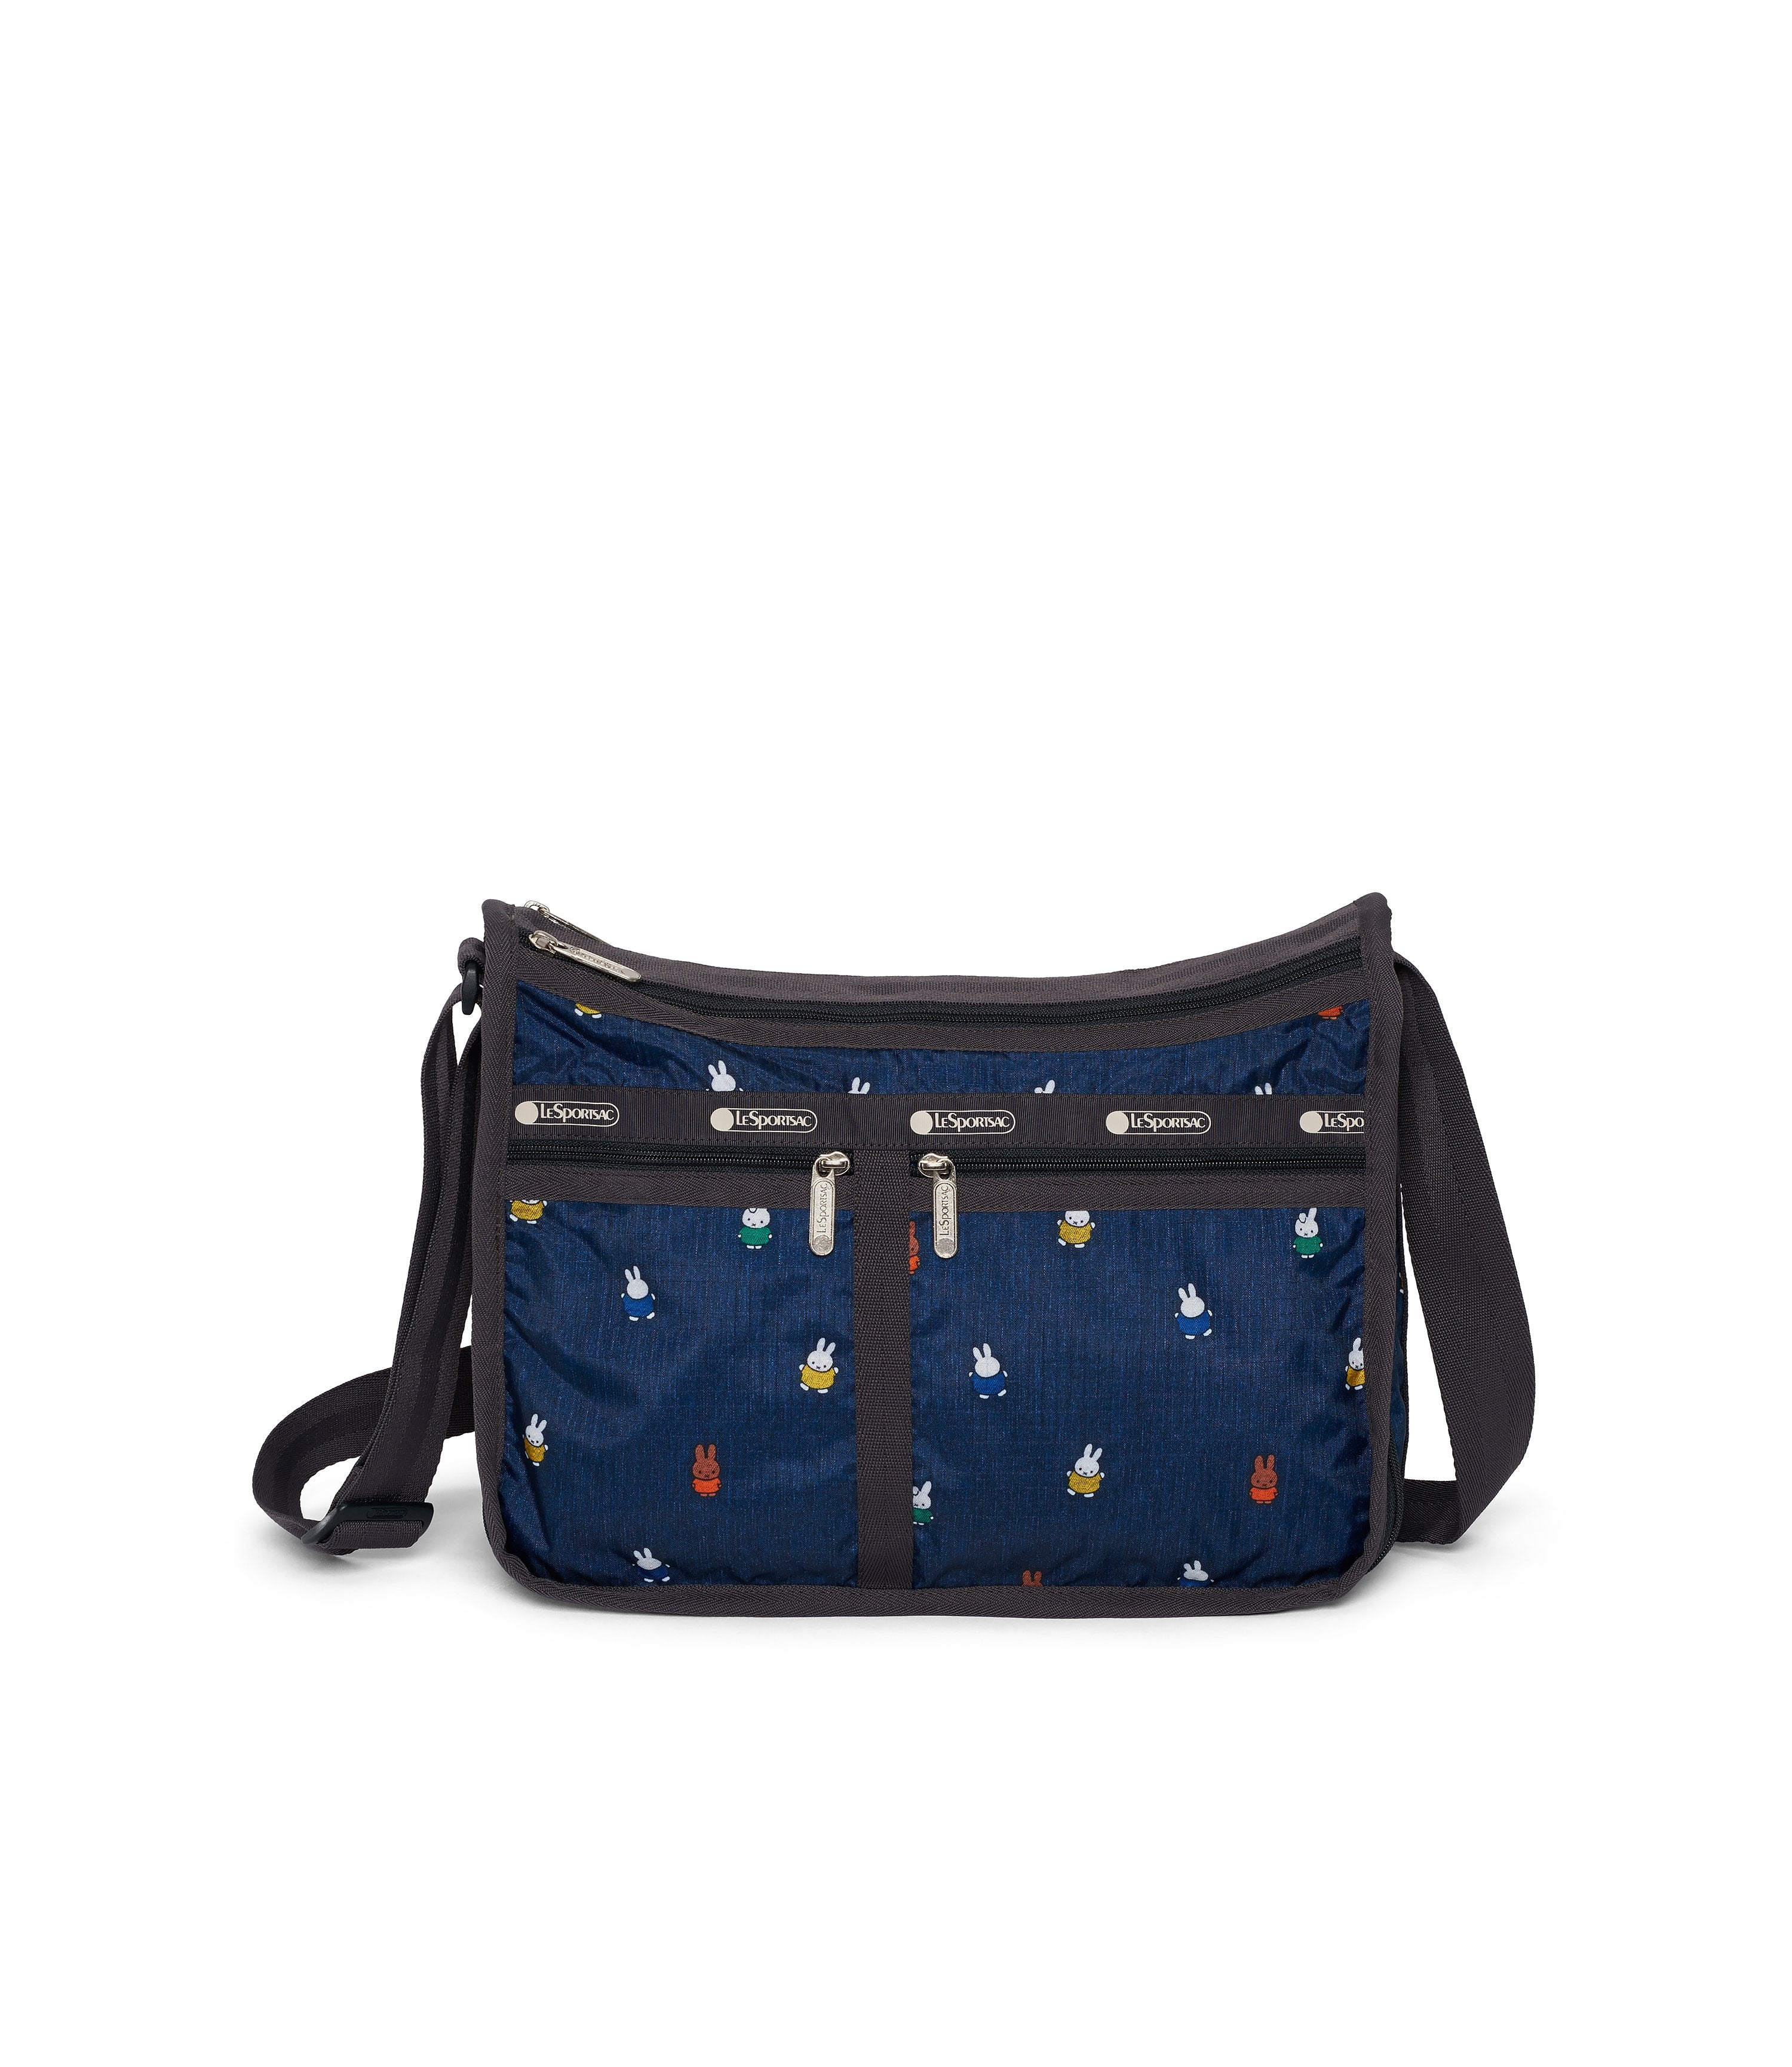 Dick Bruna - LeSportsac Deluxe Everyday Bag - Handbag - Miffy and Friends - Navy -  Front View